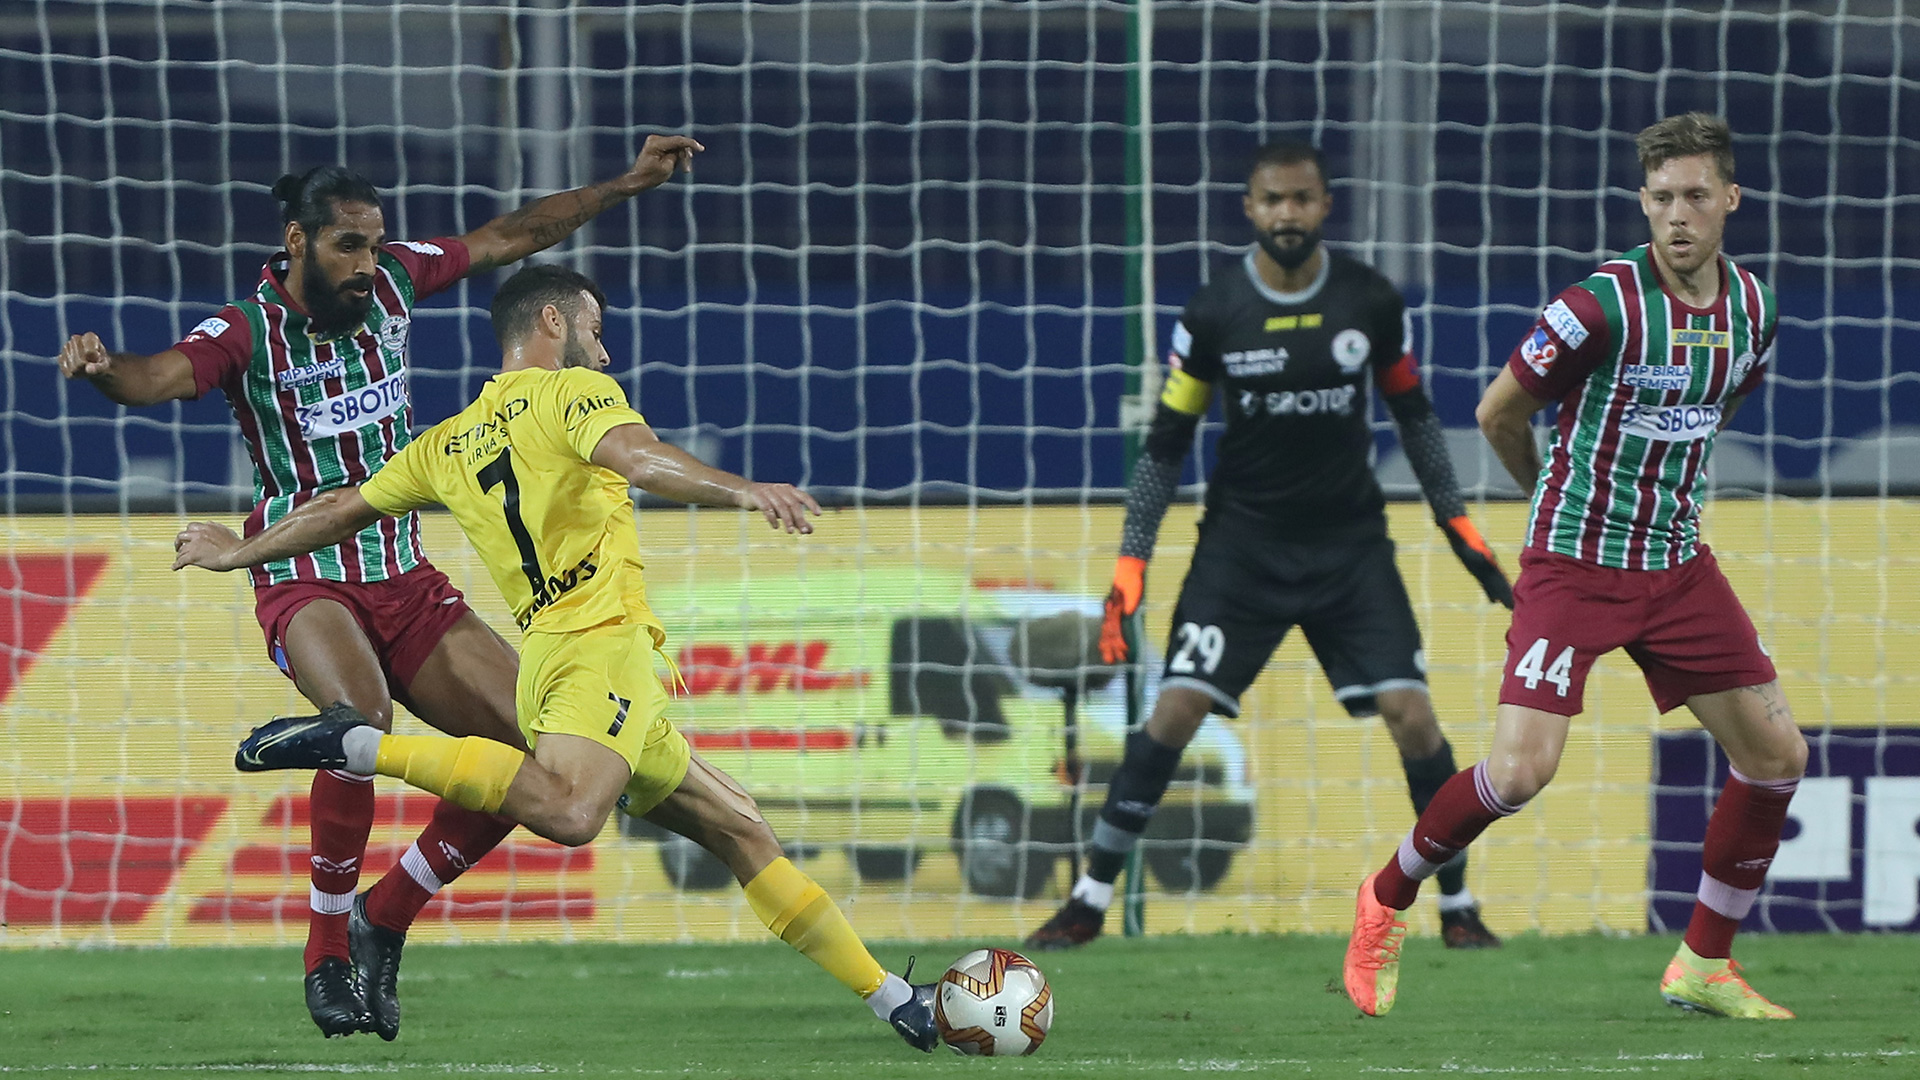 ISL 2020-21: Marvellous Mumbai City exerted complete dominance against ATK Mohun Bagan